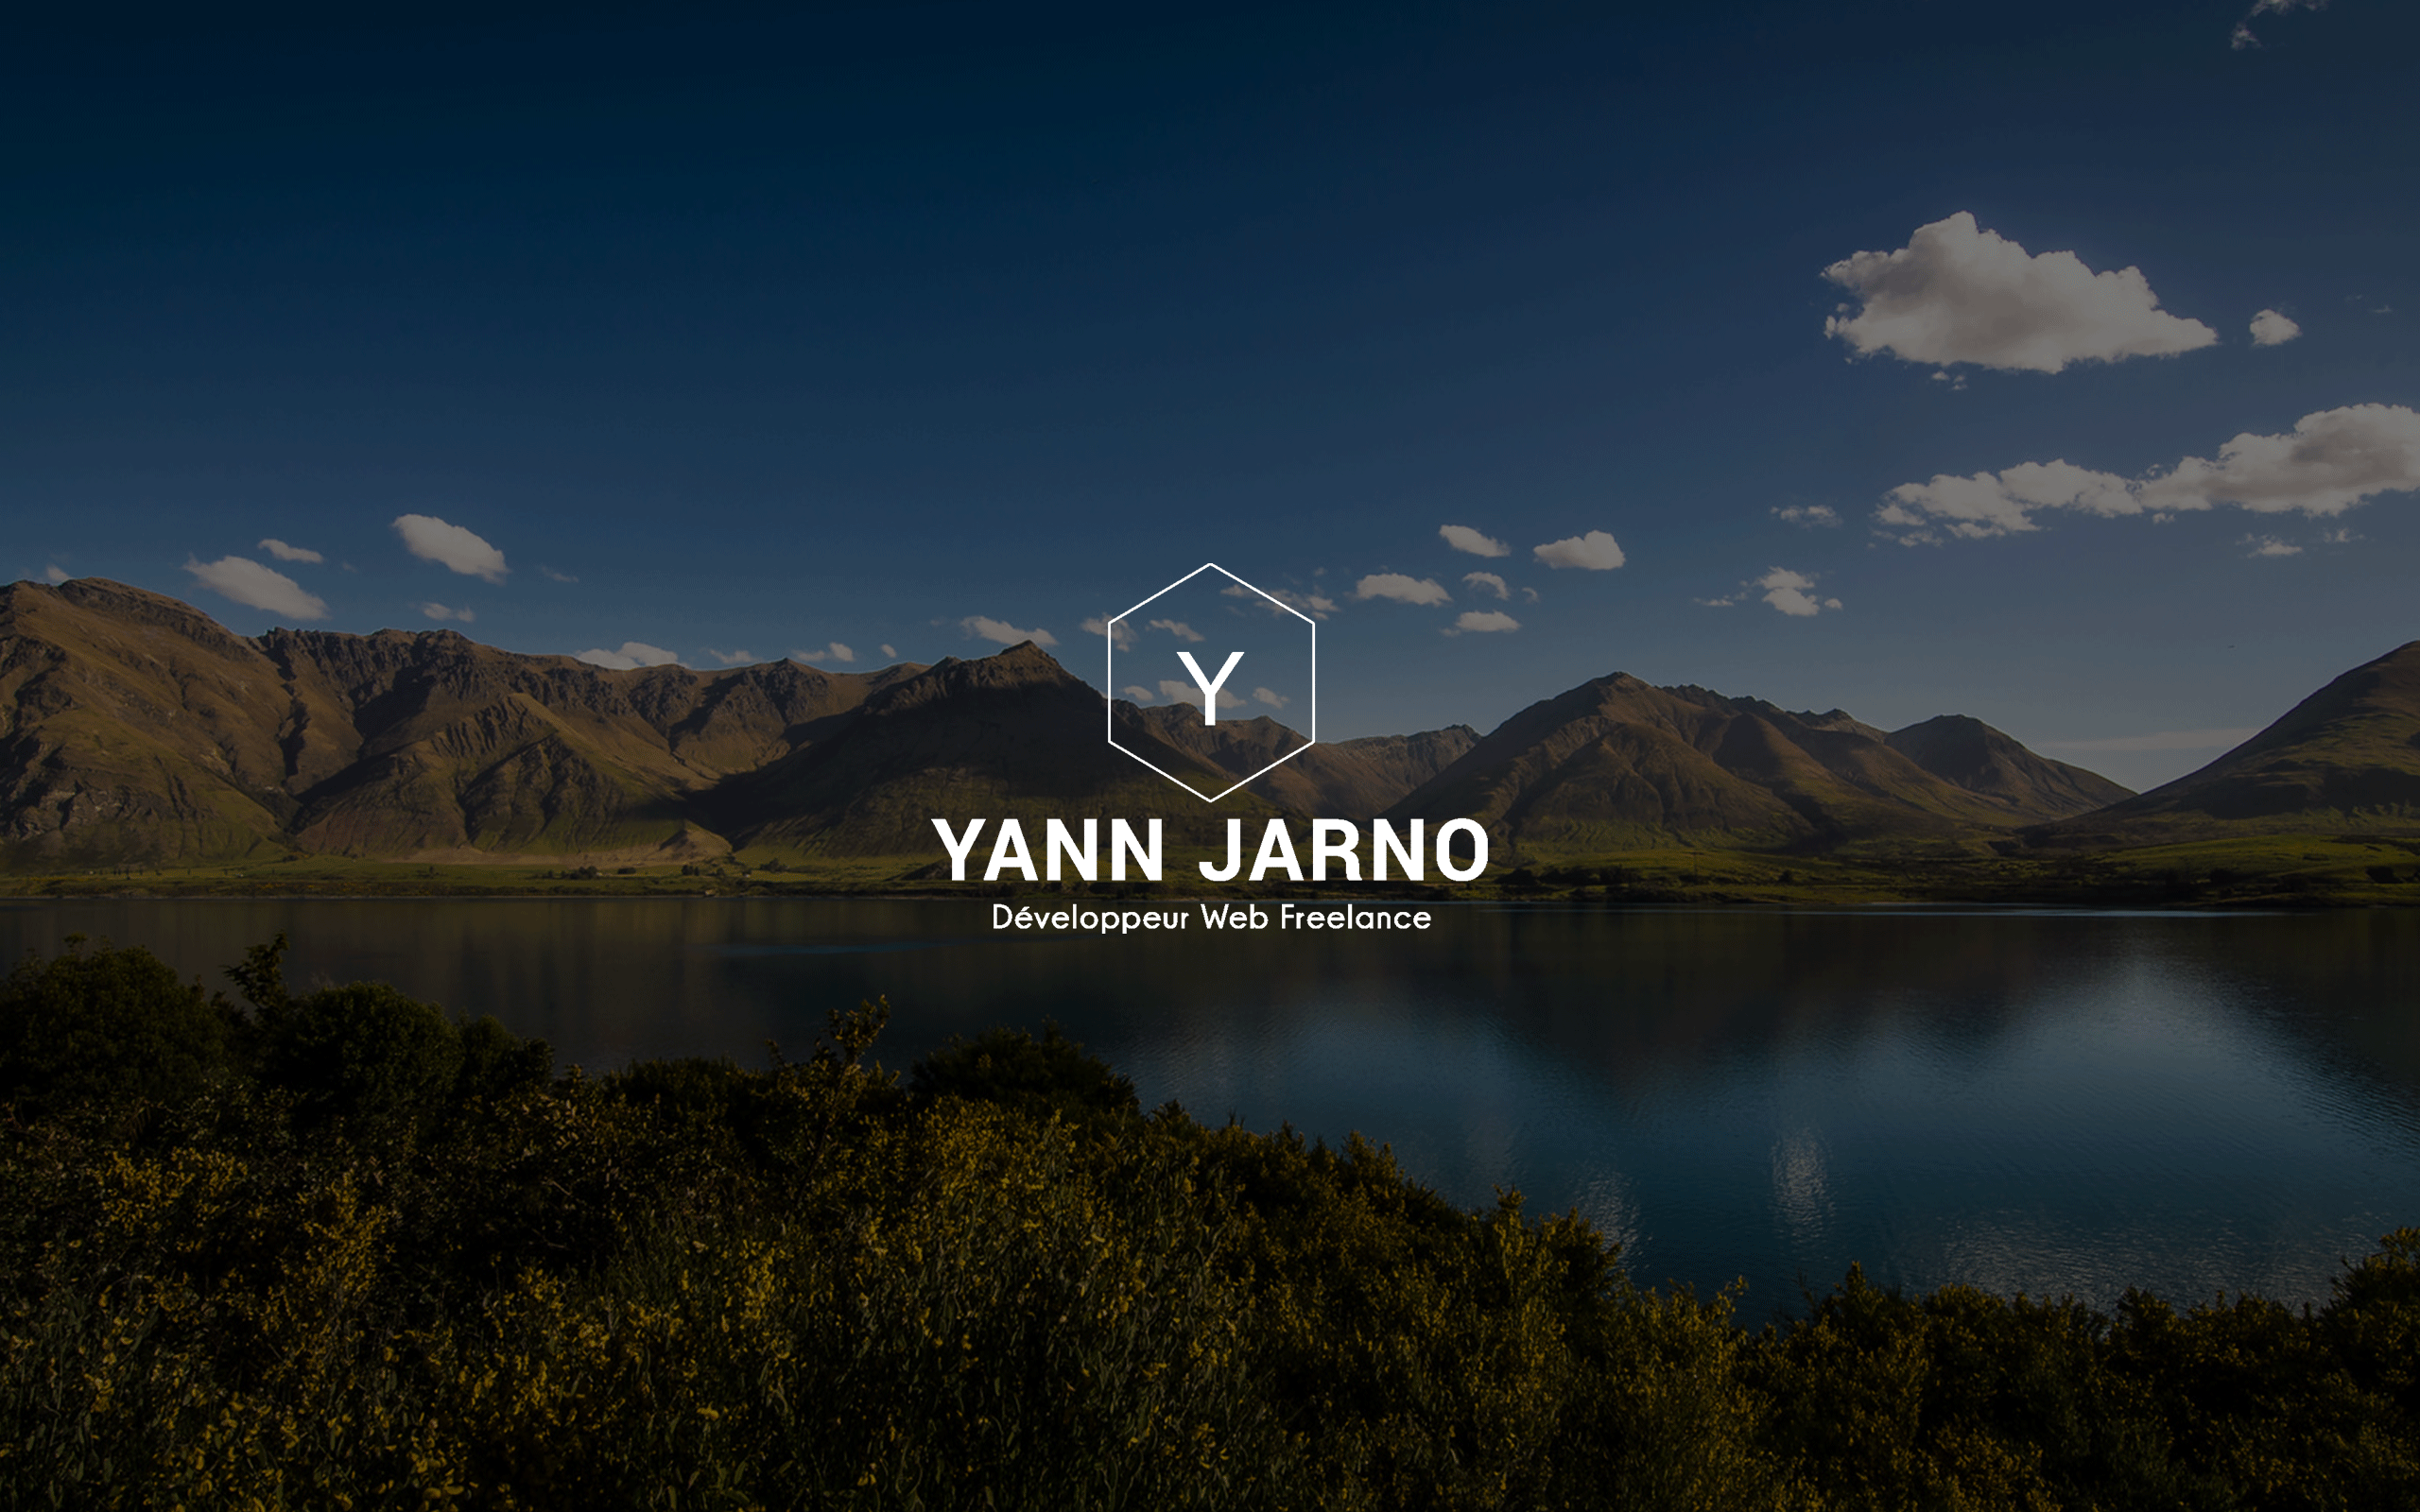 yann-jarno-background-21